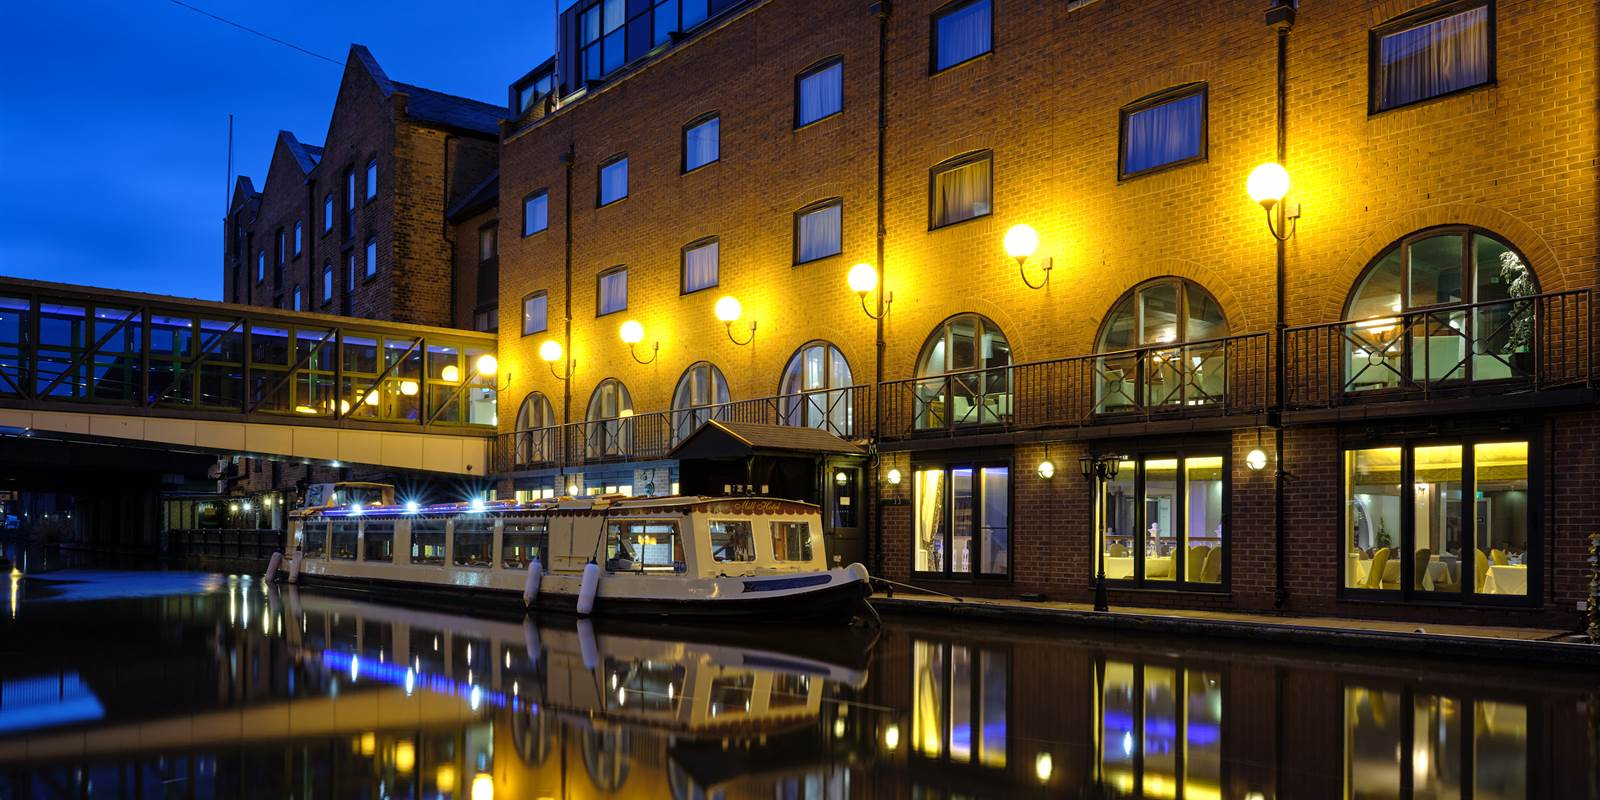 Hotels in Chester | Chester Spa Hotels | The MILL Hotel